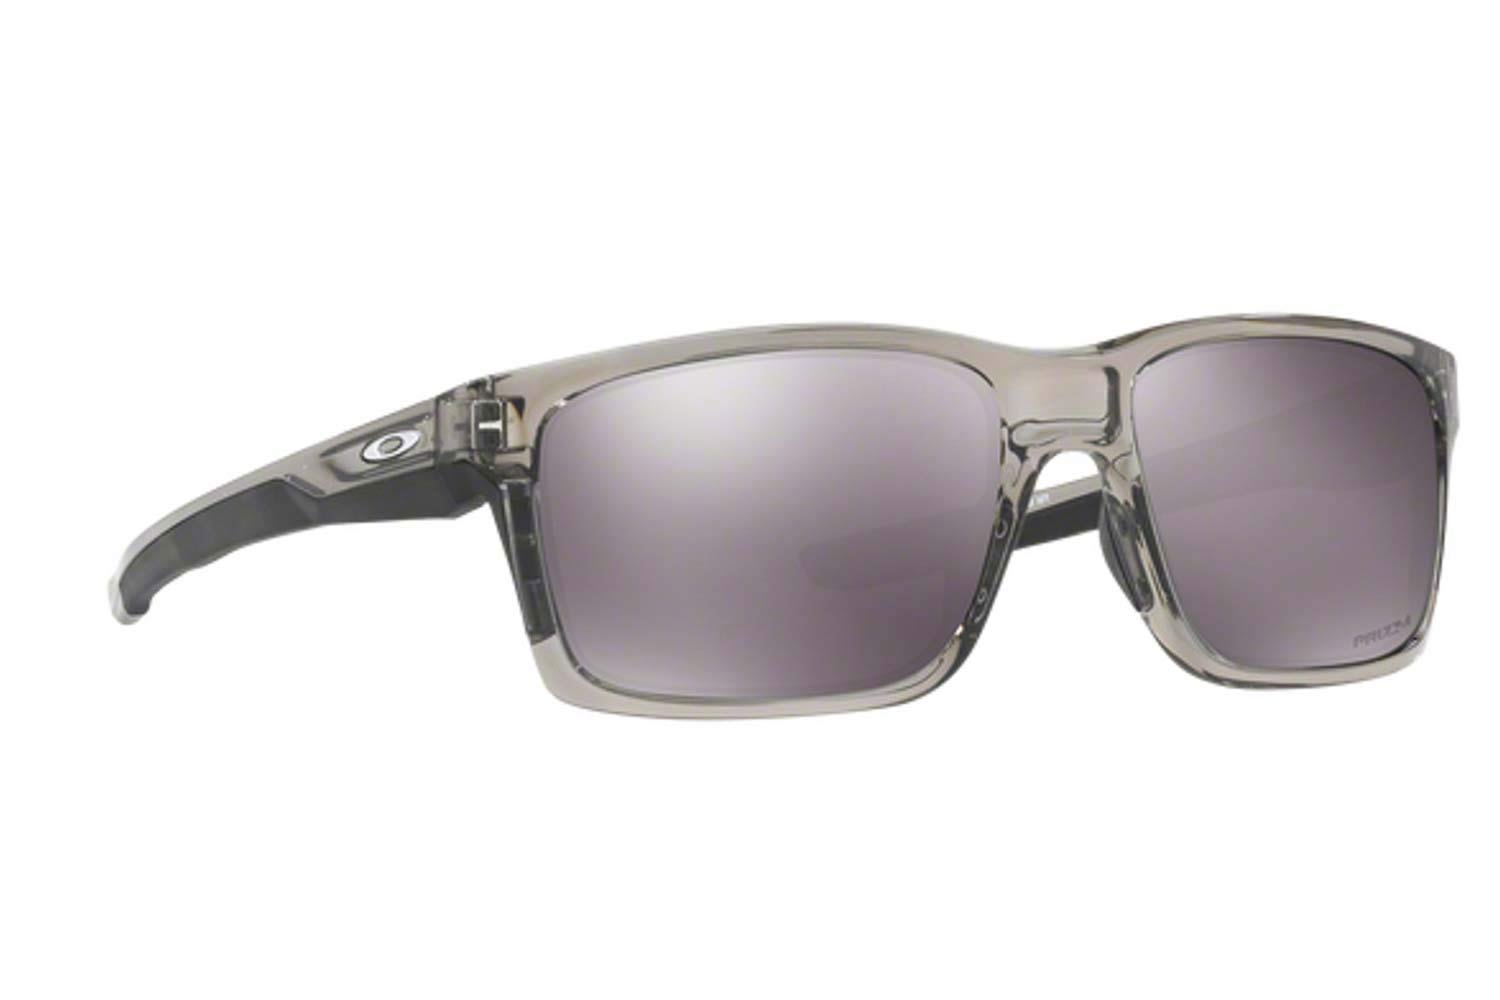 a4a22c36b4 SUNGLASSES Oakley MAINLINK 9264 31 GREY INK prizm black